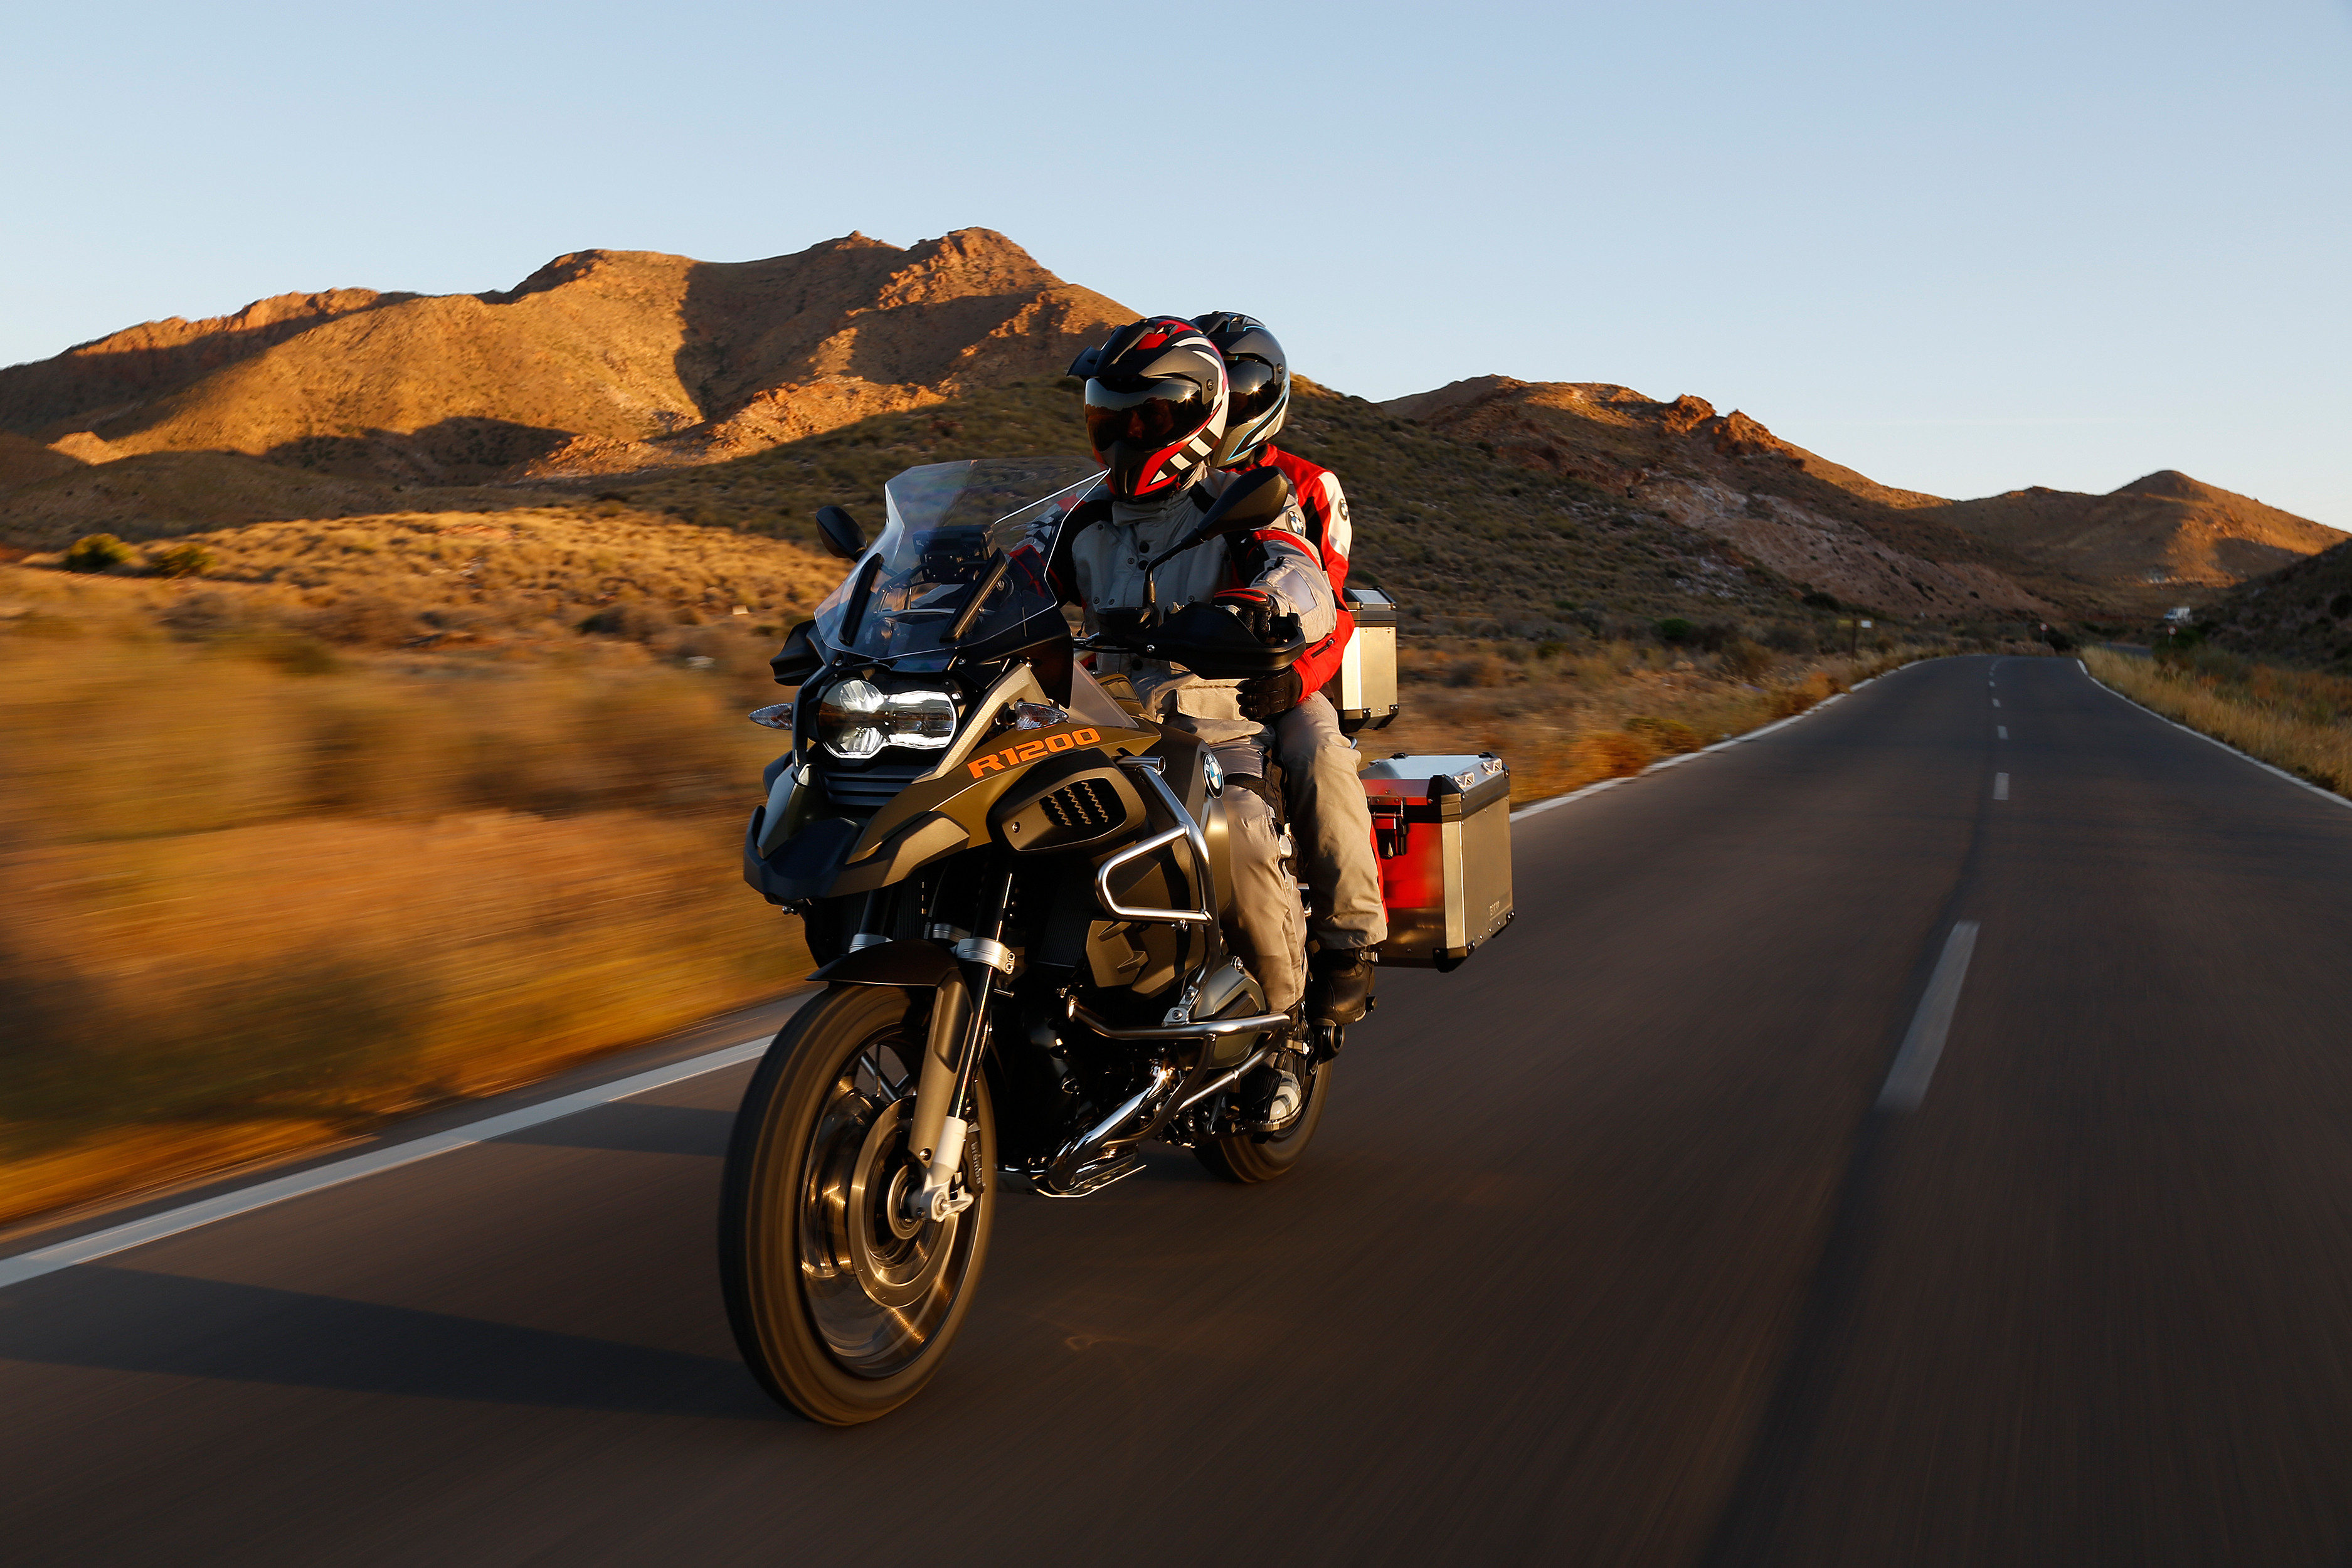 5 Futuristic Motorcycle Technologies That Make Riding A Breeze